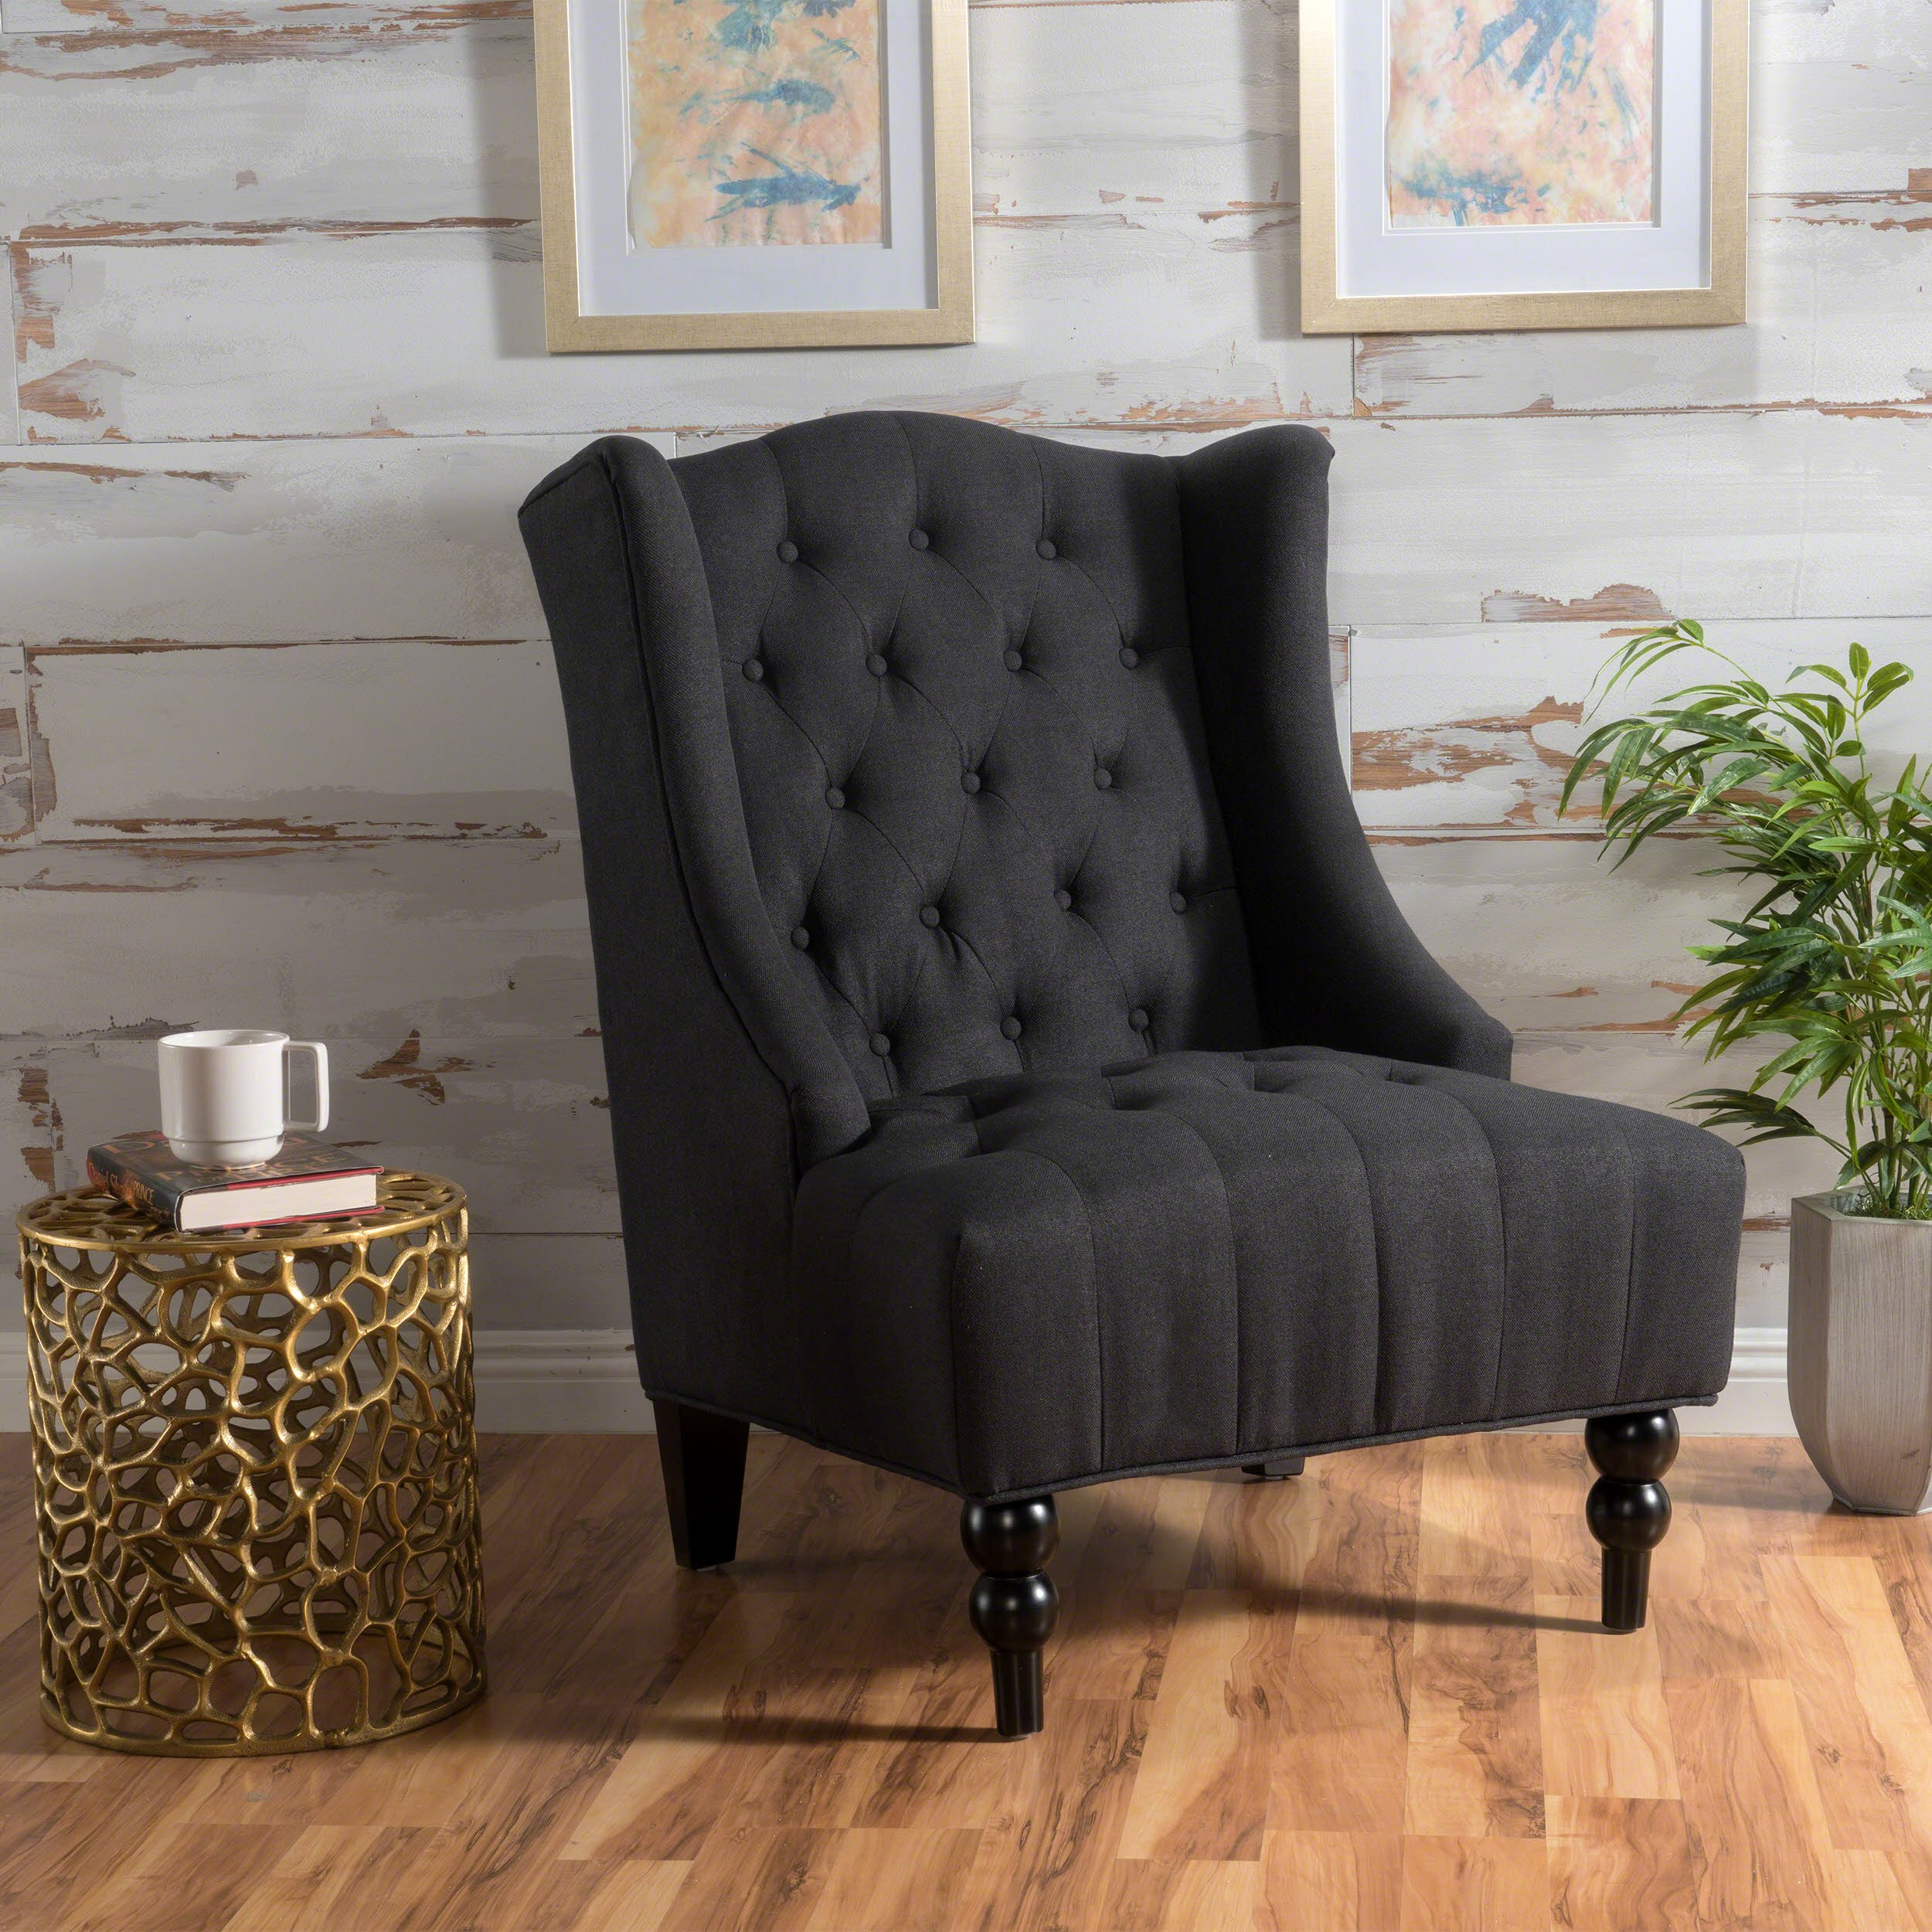 Christopher Knight Home 299876 Clarice | | Tall Wingback Fabric Club Chair | Perfect for Living Room, Dimensions: 27.25''D x 33.75''W x 38.50''H, Charcoal by Christopher Knight Home